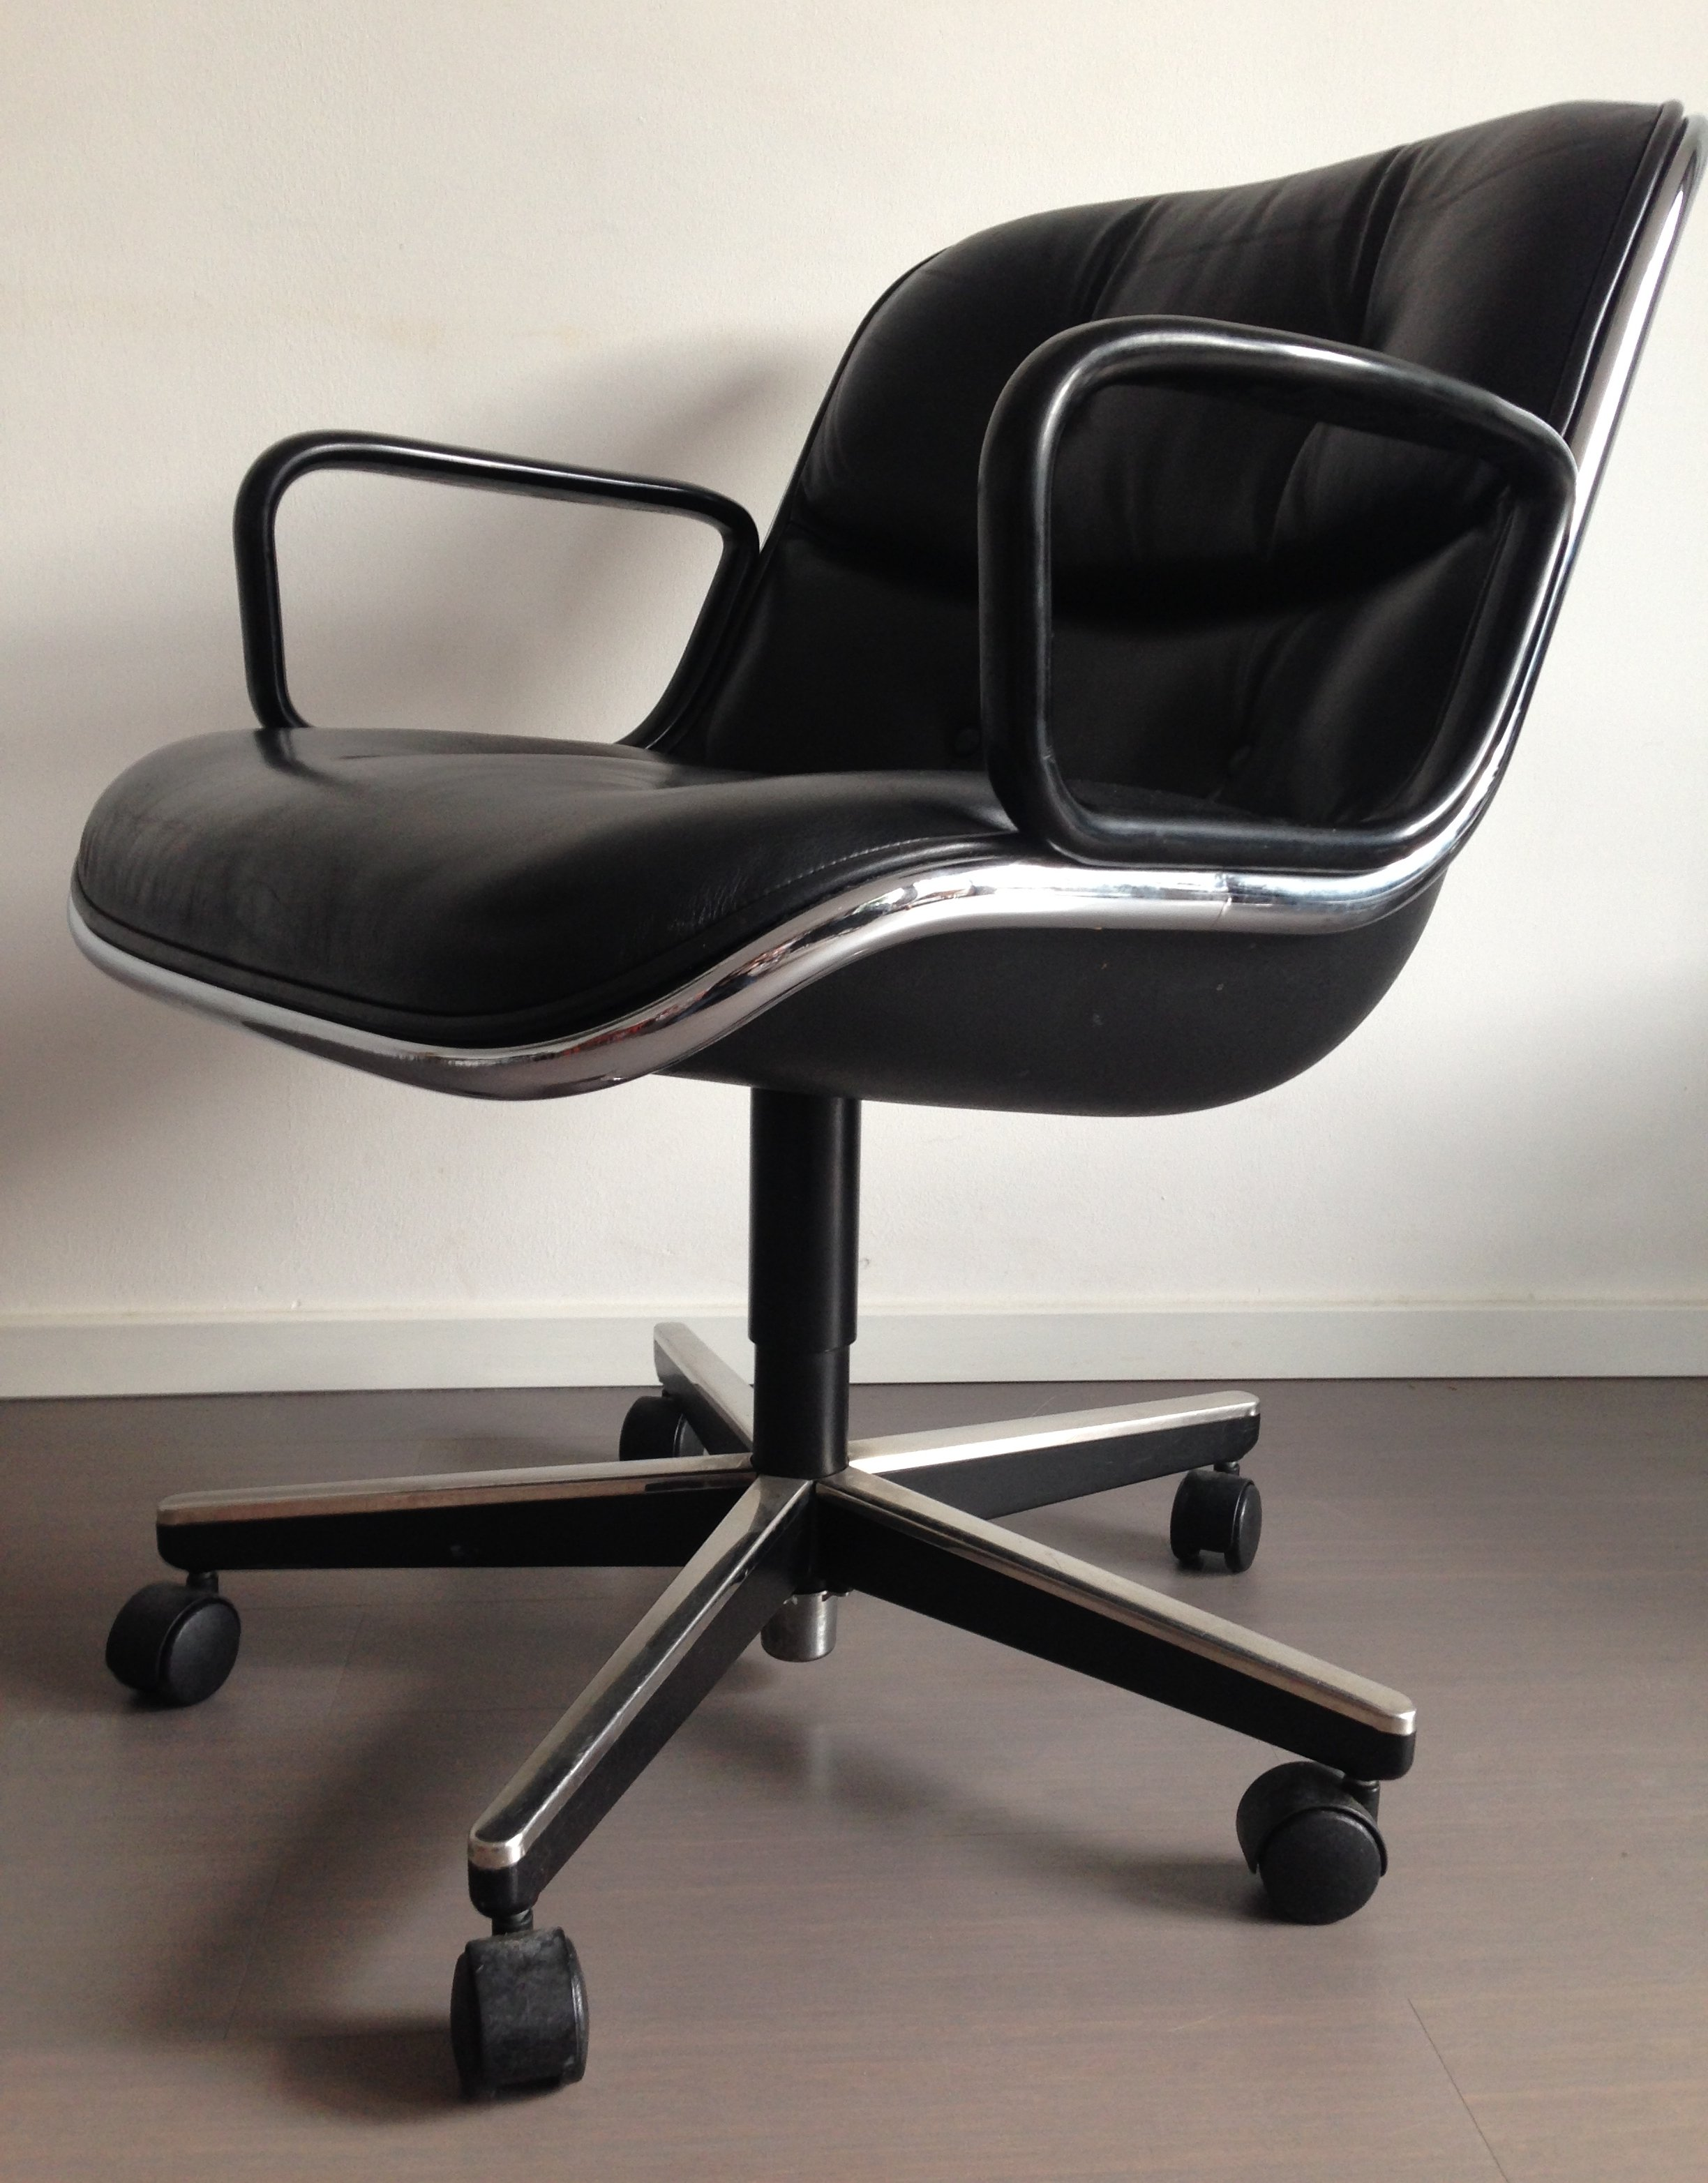 Knoll Pollock Chair Office Chair By Charles Pollock For Knoll 1960s 58471